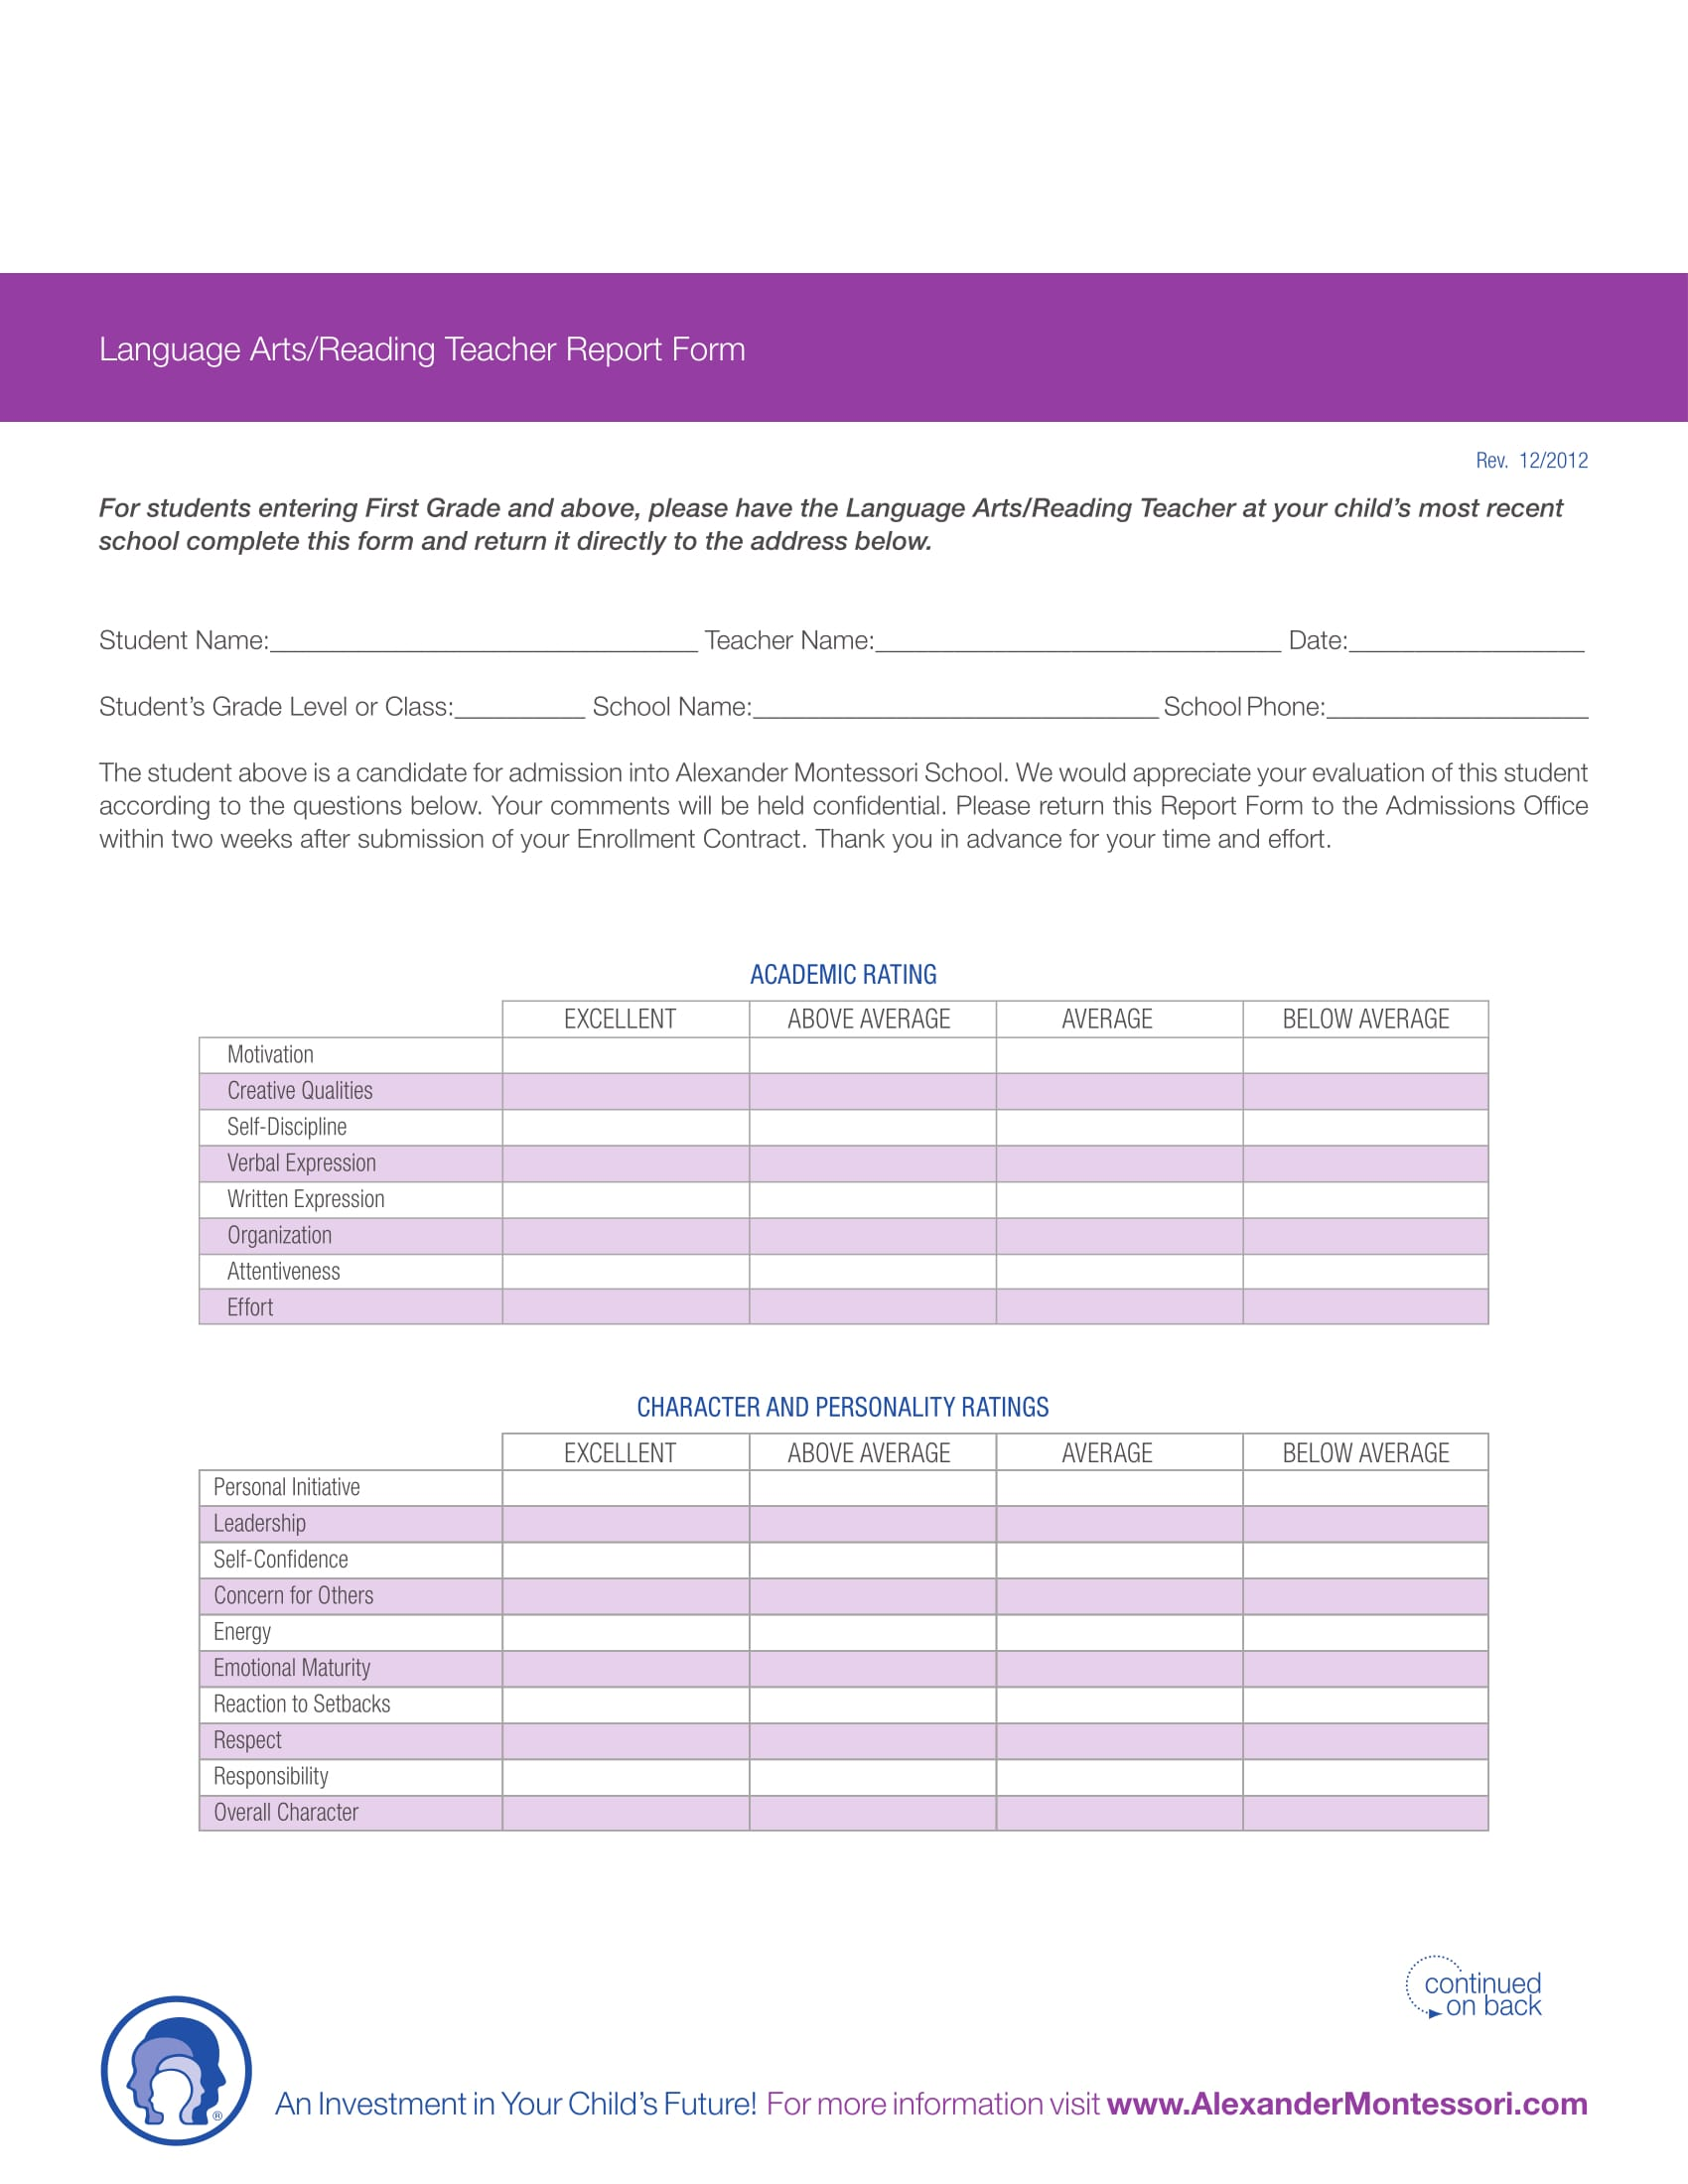 language or reading teacher report form 1